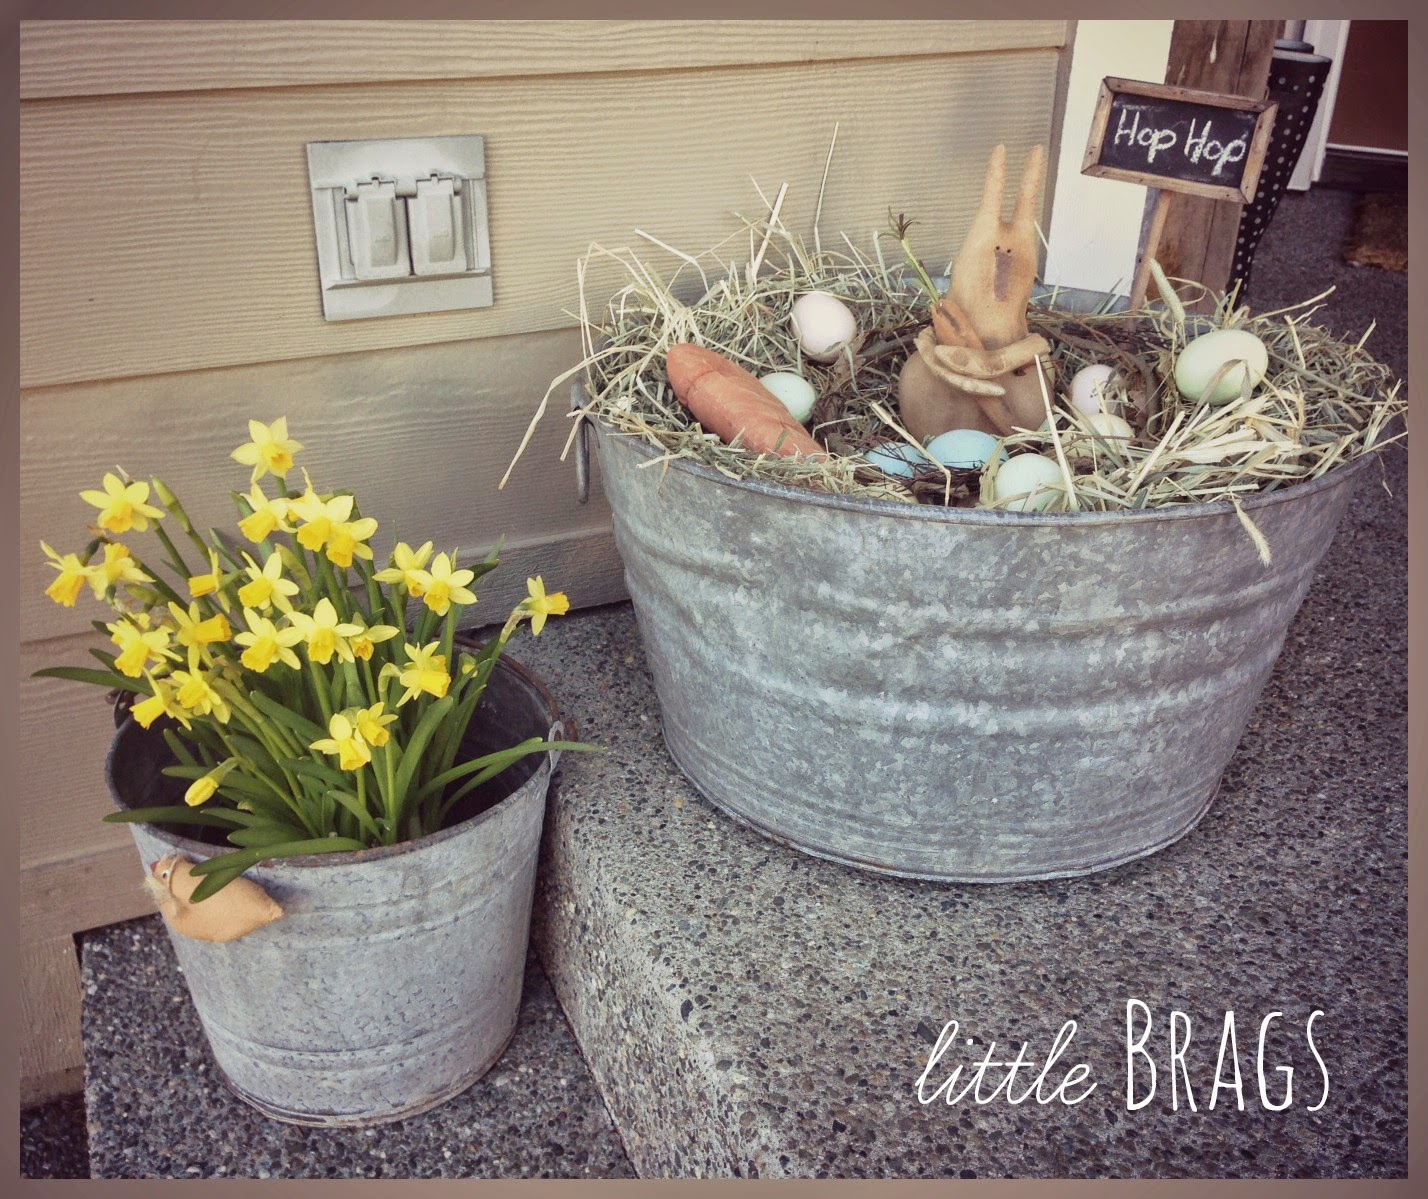 Outdoor Spring Decor: Little Brags: A Little Easter Decorating On The Front Porch